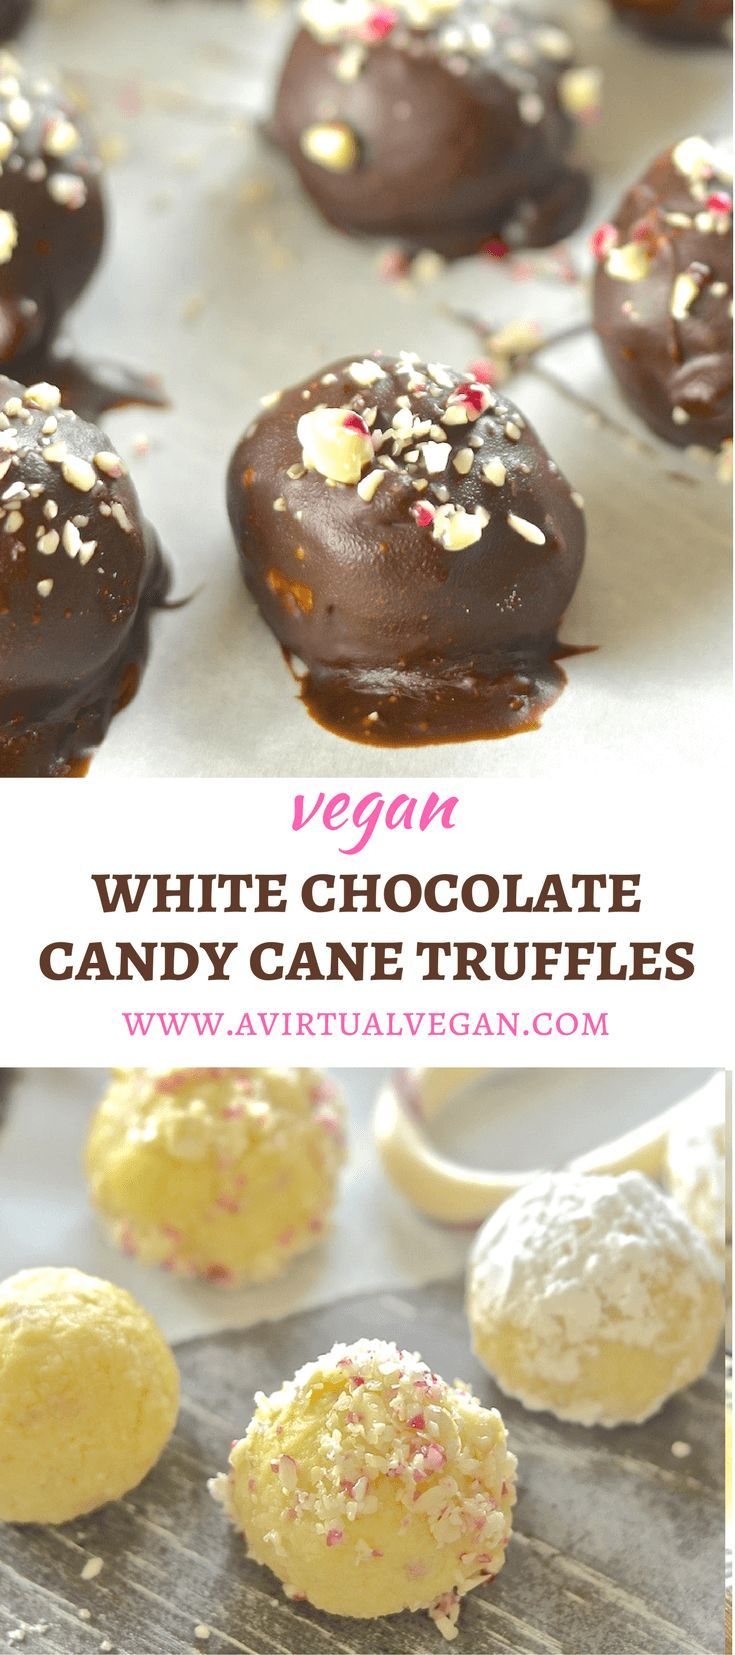 These Festive Vegan White Chocolate Candy Cane Truffles Are Meltingly Rich Sweet Creamy Indulge Vegan Candies Vegan White Chocolate Vegan Christmas Recipes